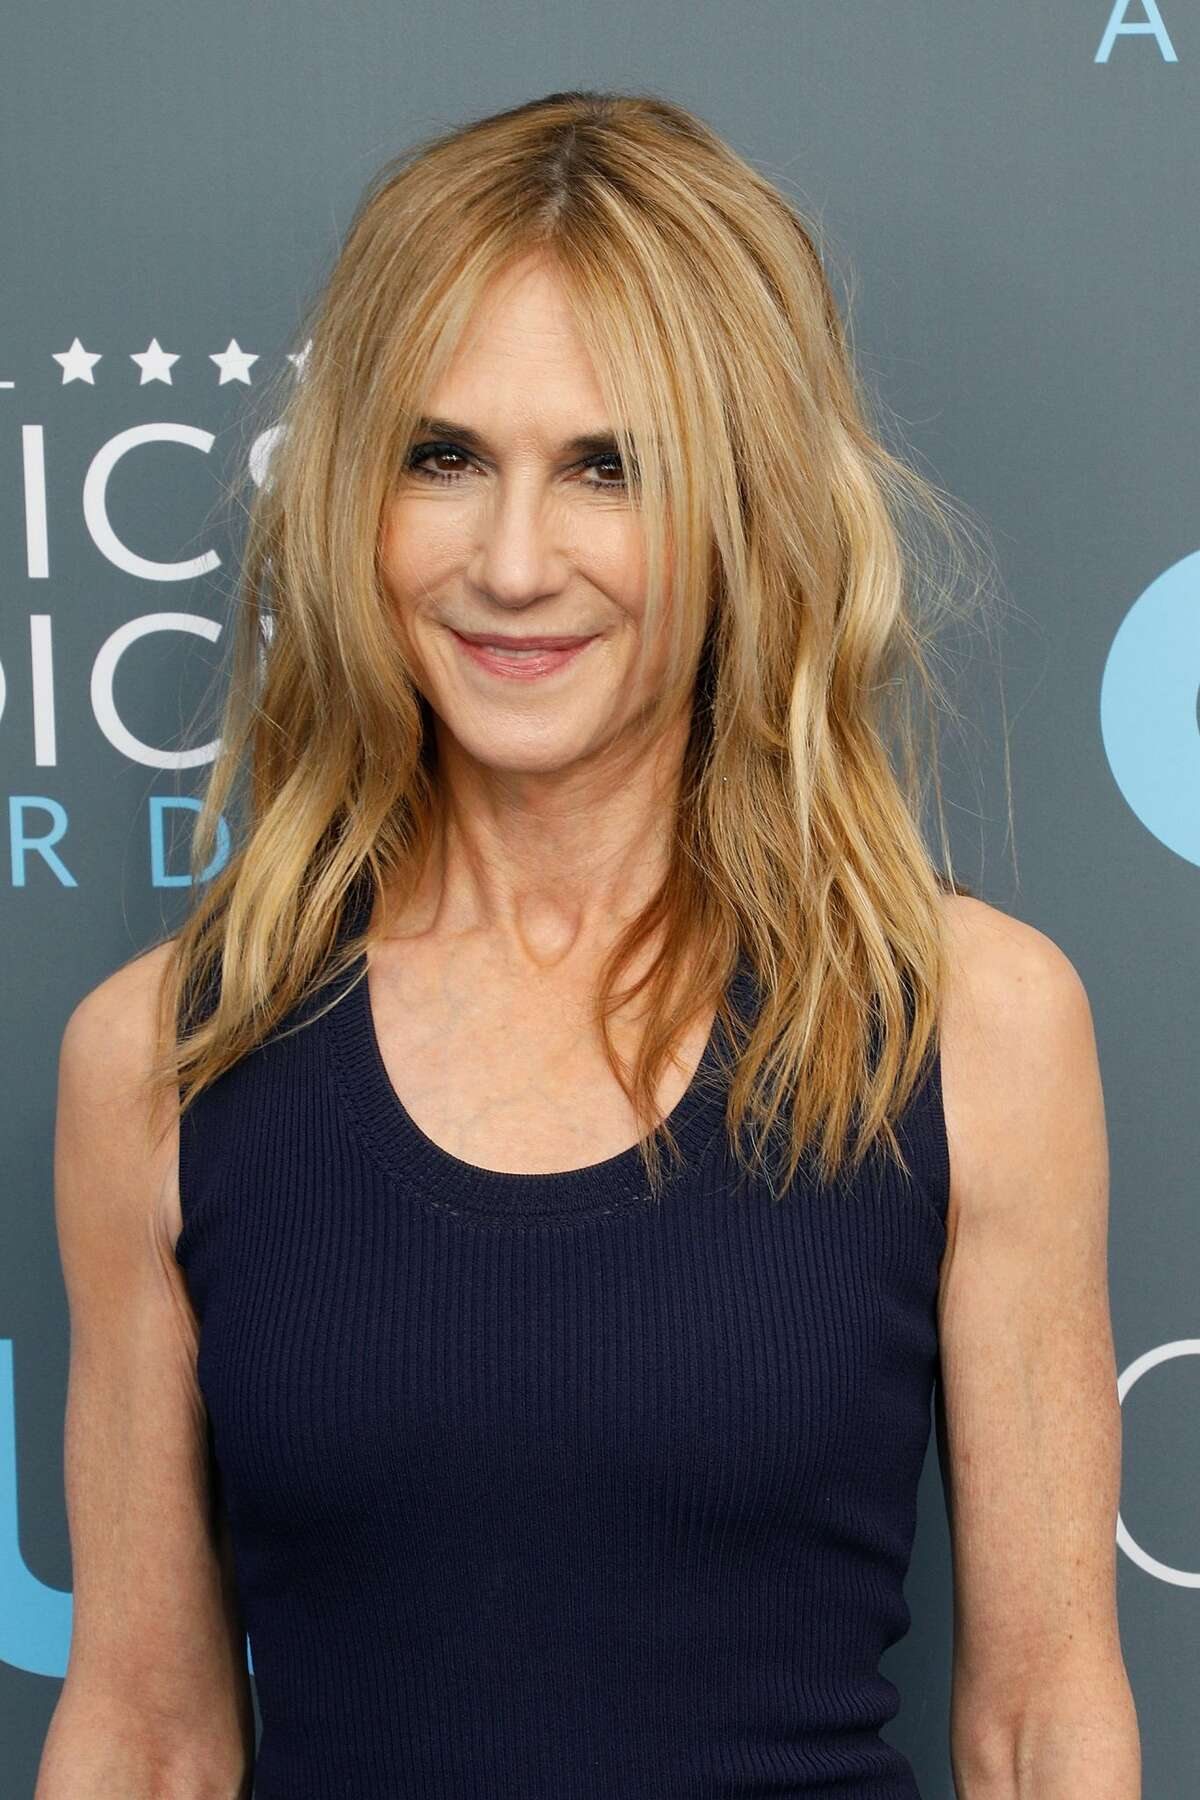 Holly Hunter attends the 23rd Annual Critics' Choice Awards at Barker Hangar on January 11, 2018 in Santa Monica, California. (Photo by Taylor Hill/Getty Images)